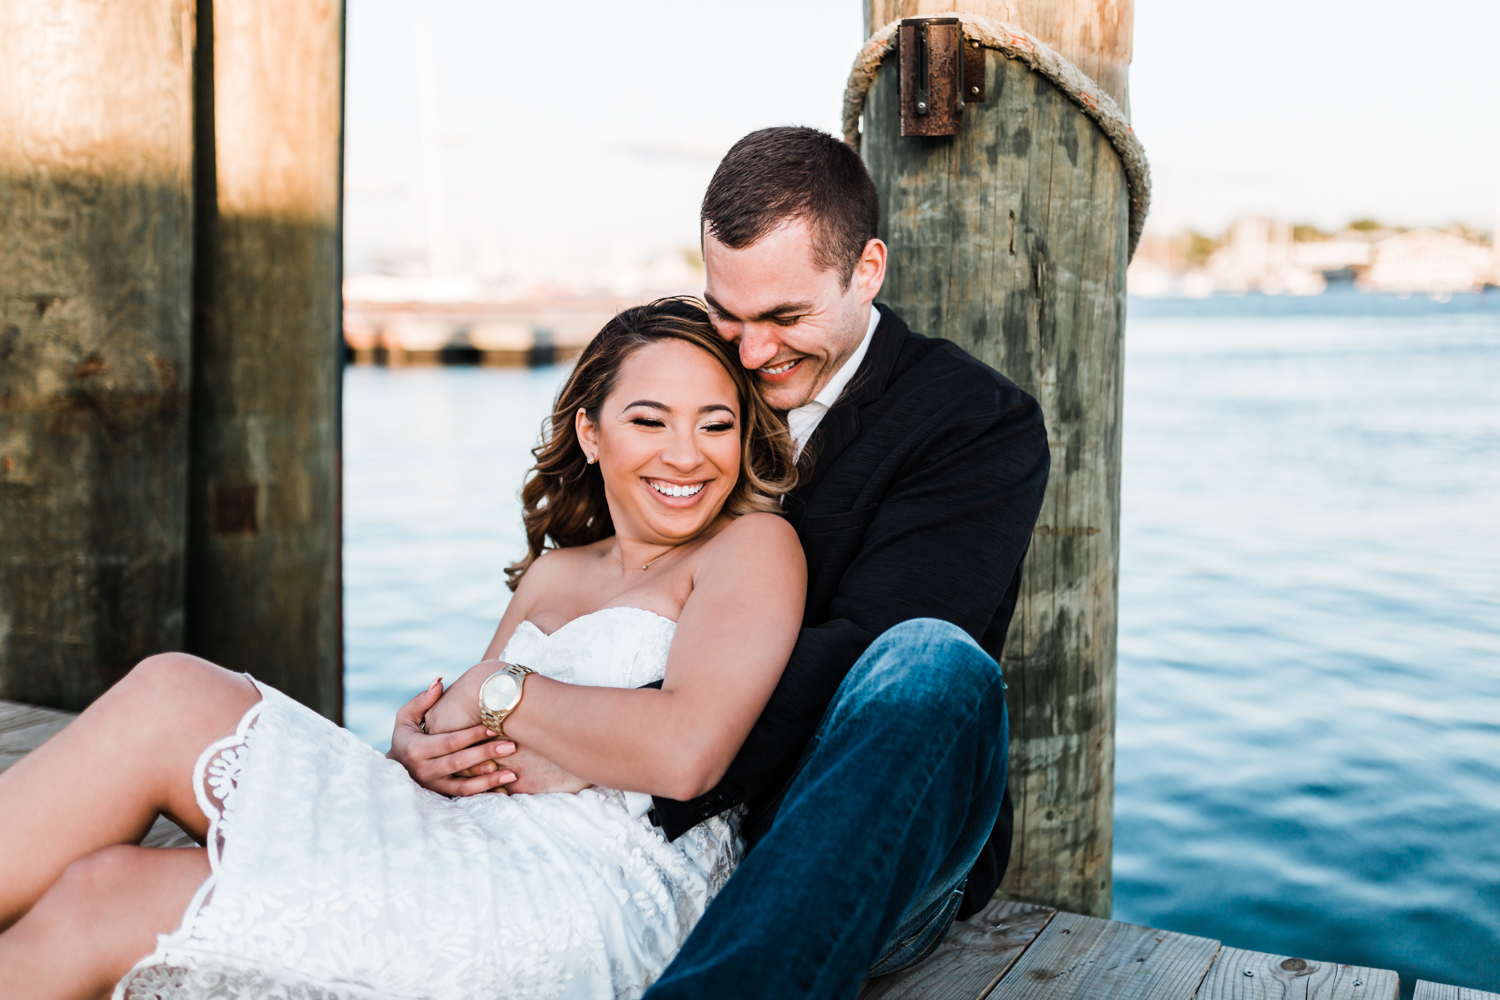 couple snuggling and laughing together in Annapolis, MD by the water